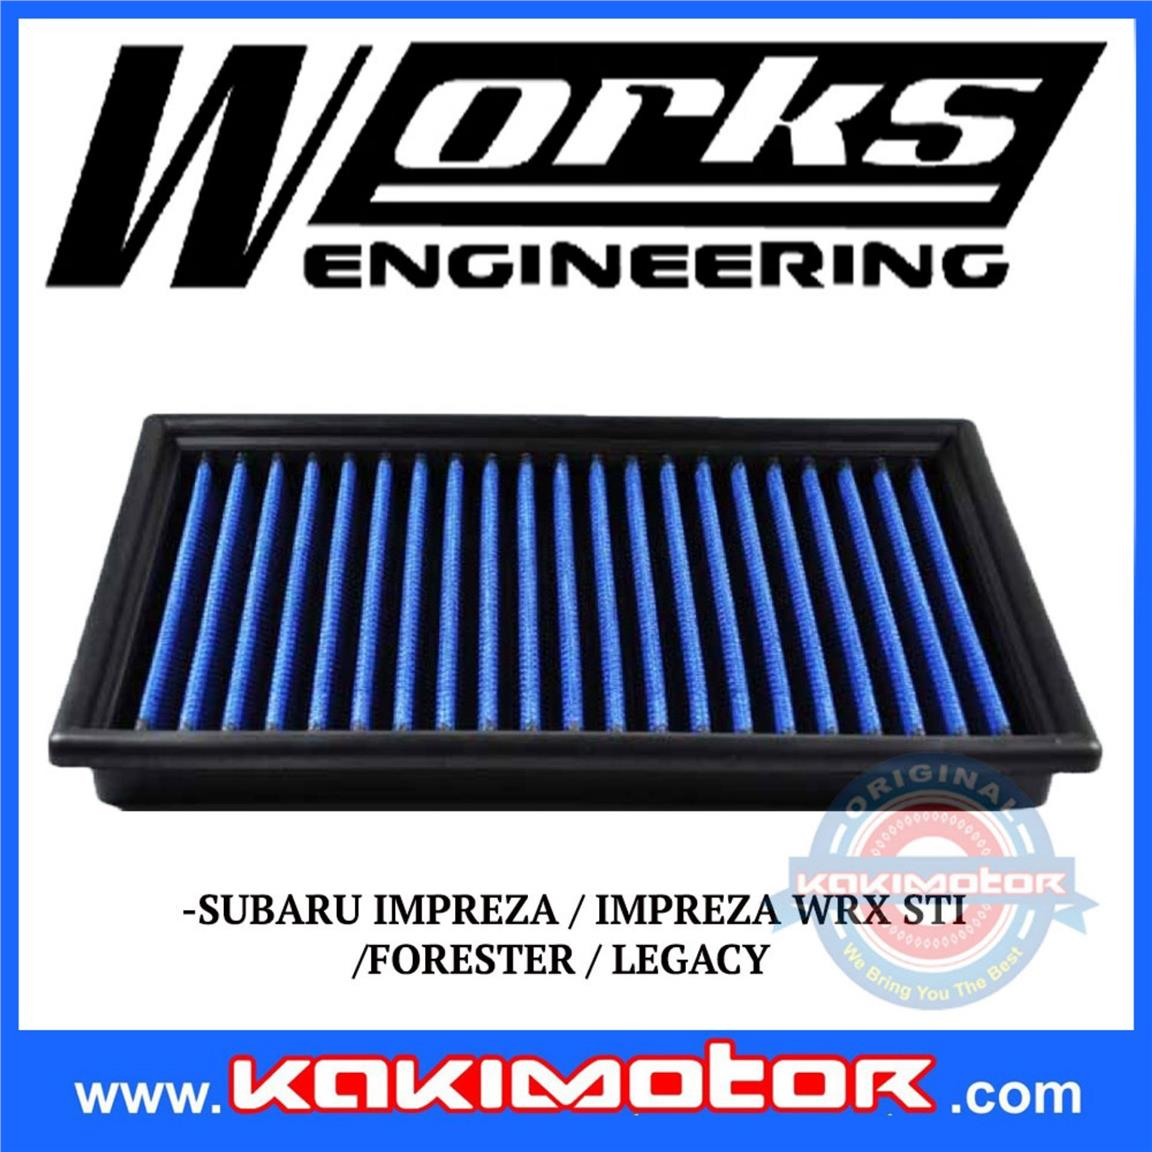 Works Engineering-Subaru Impreza/ Impreza WRX STI / Forester / Legacy